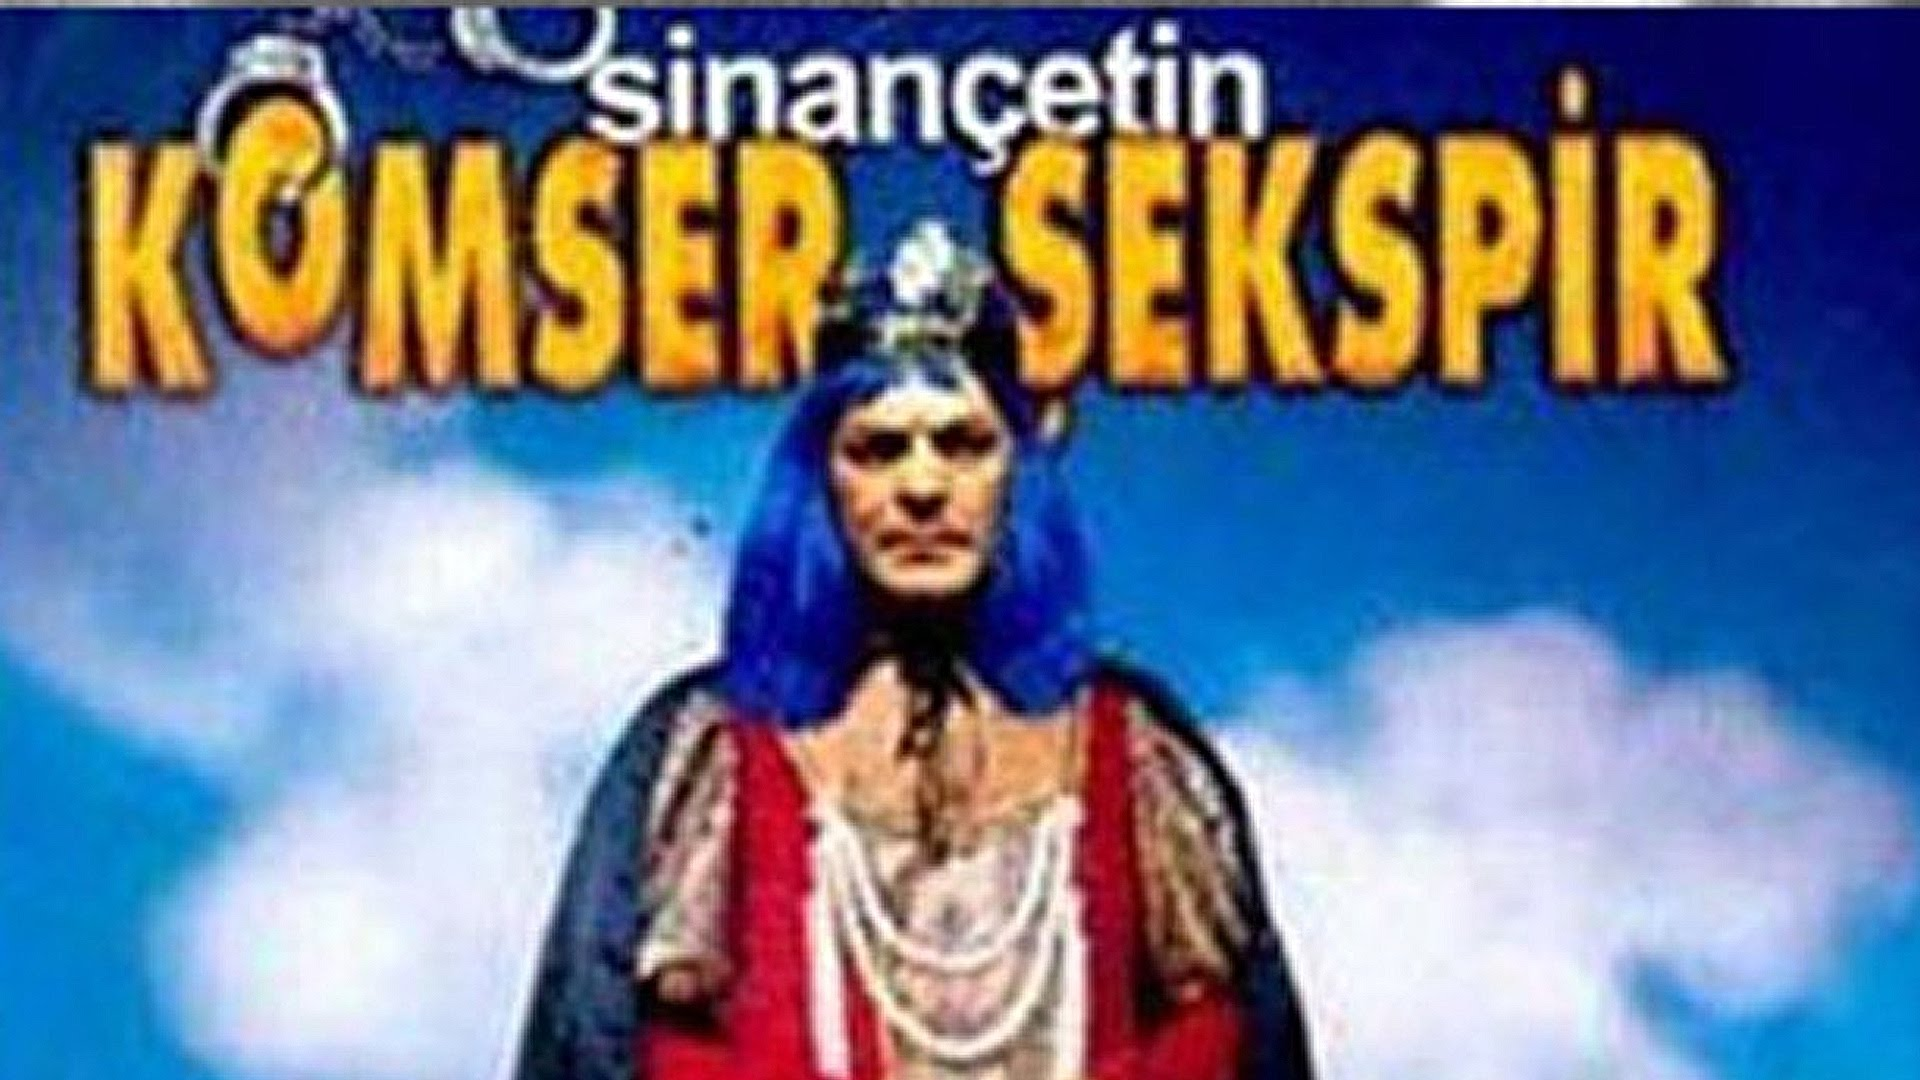 Komser Şekspir video izle